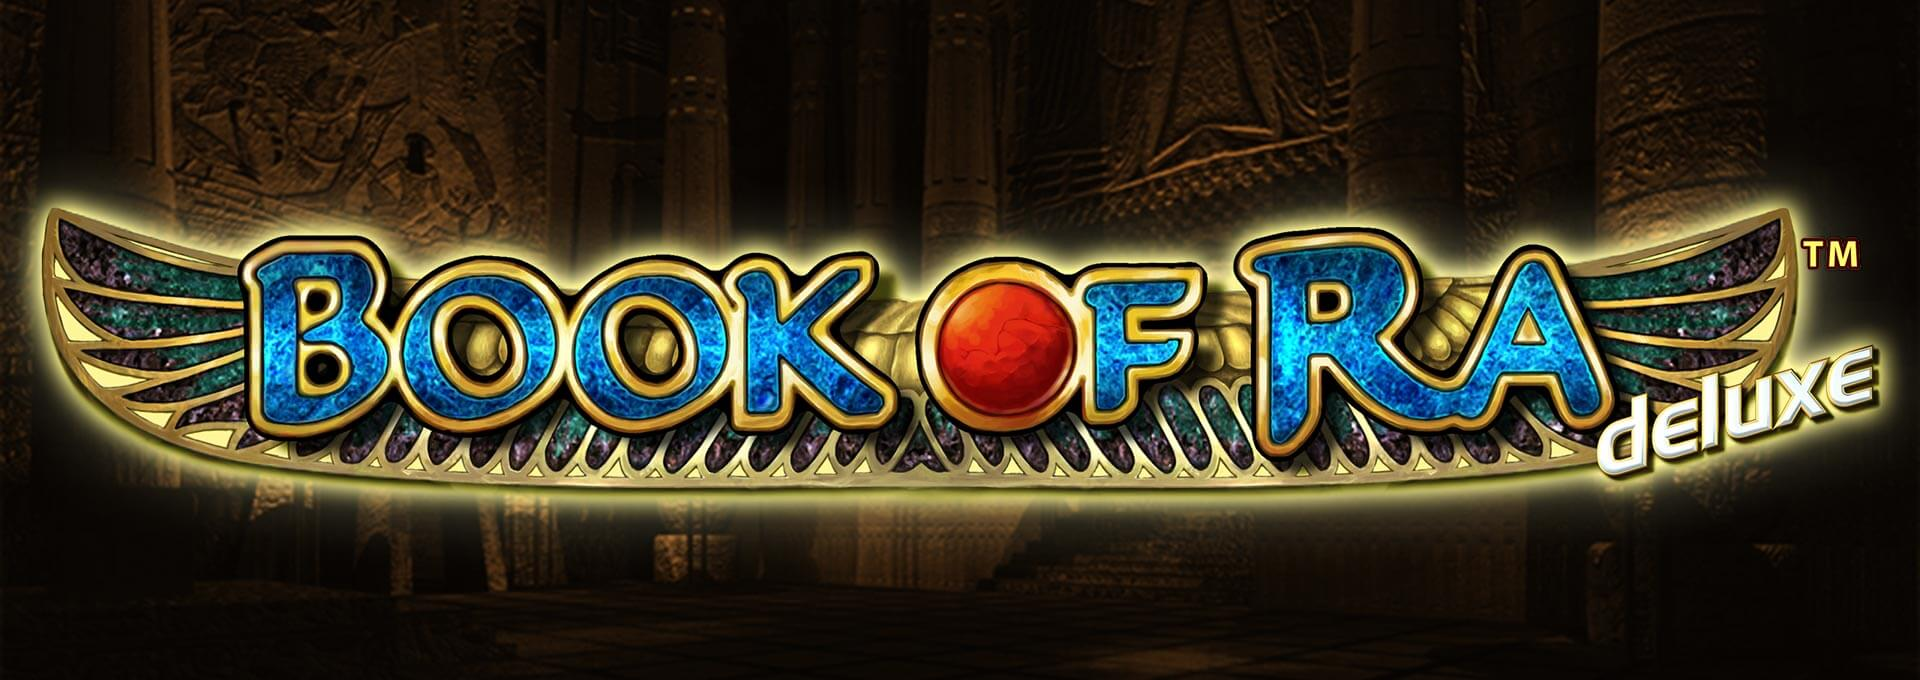 slots casino free online book of ra deluxe demo